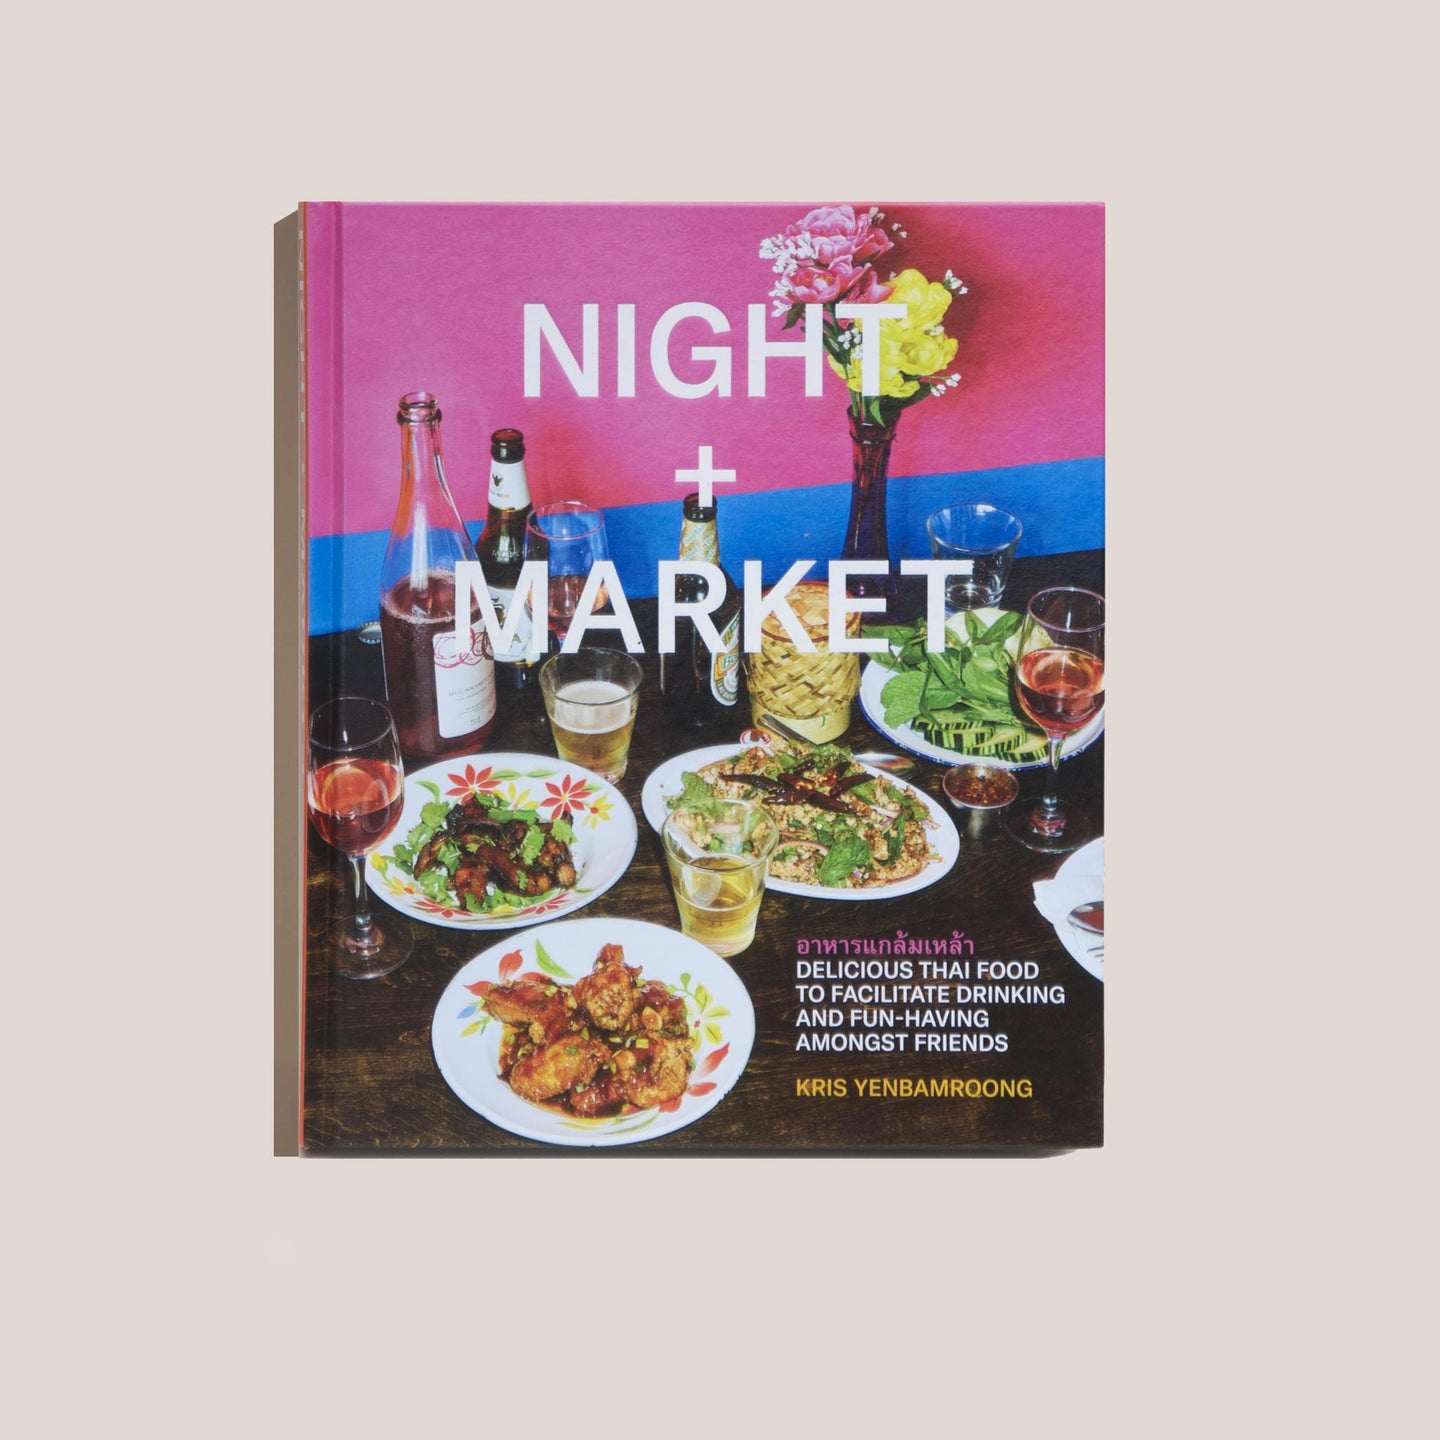 Night + Market by Kris Yenbamroong and Garrett Snyder, available at LCD.